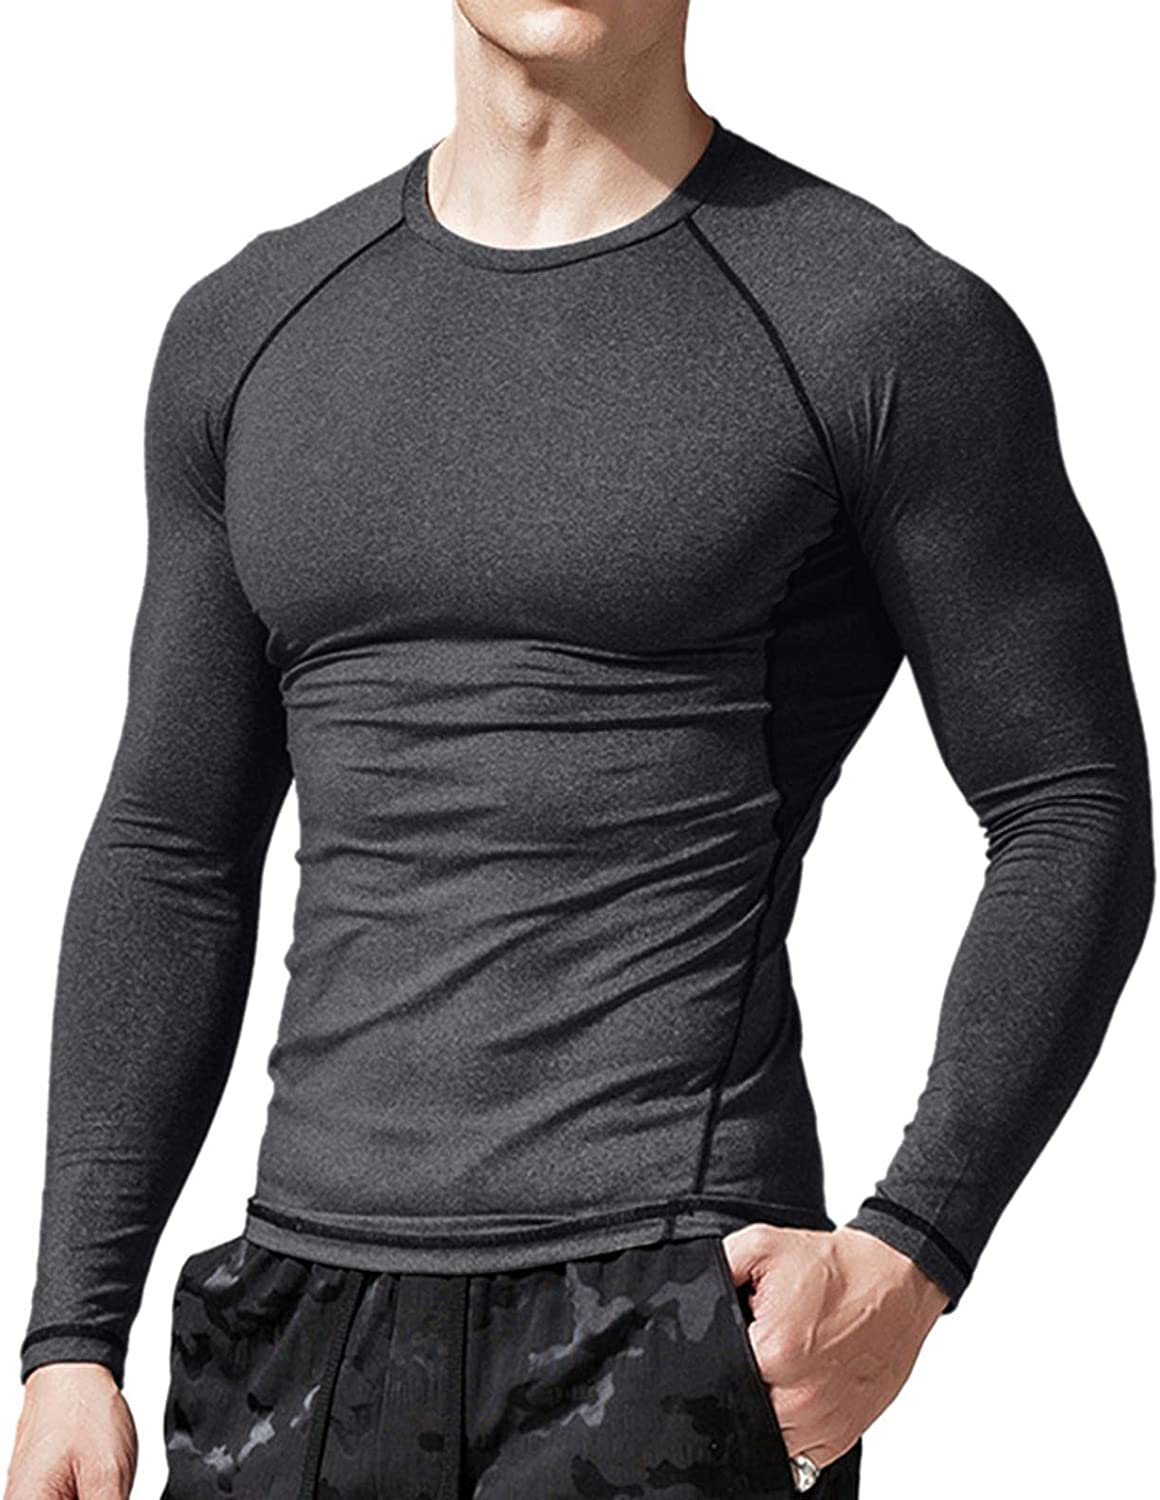 Burband Mens Standard Tech Stretch Long Sleeve Performance Tees Moisture Wicking Quick Dry Active Athletic Workout Shirts